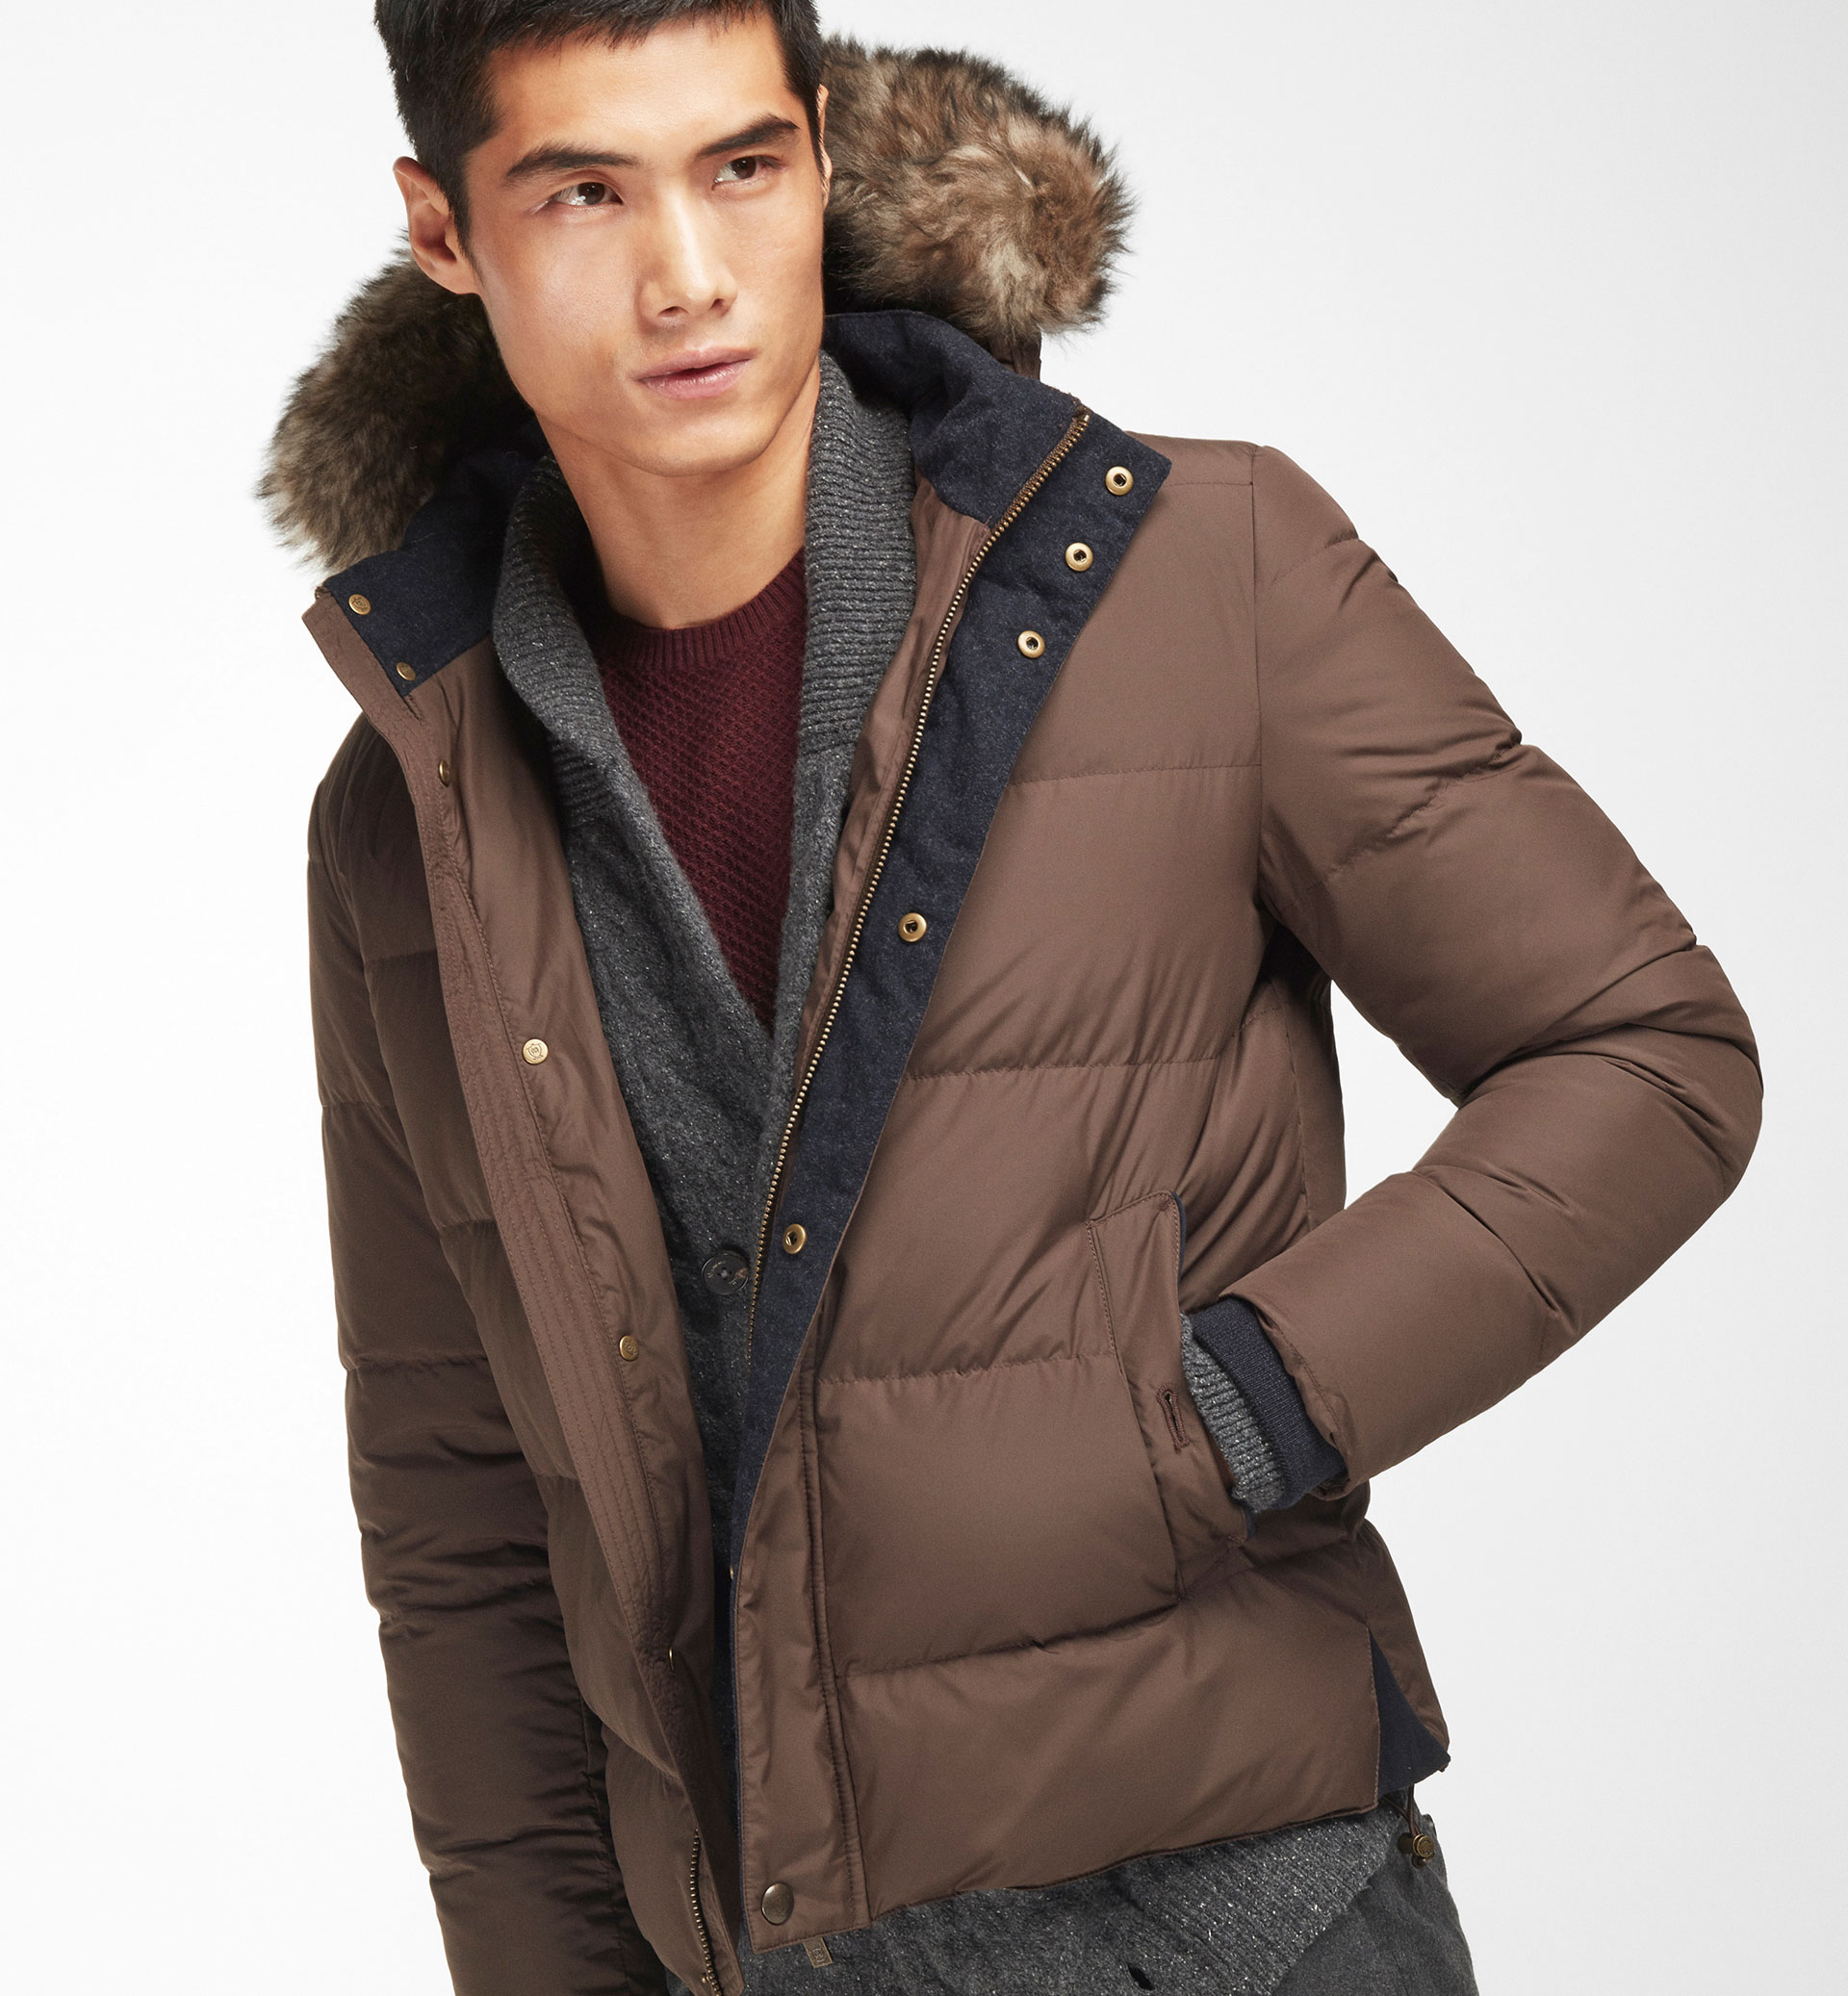 BROWN QUILTED 3/4 LENGTH COAT WITH FAUX FUR HOOD DETAIL